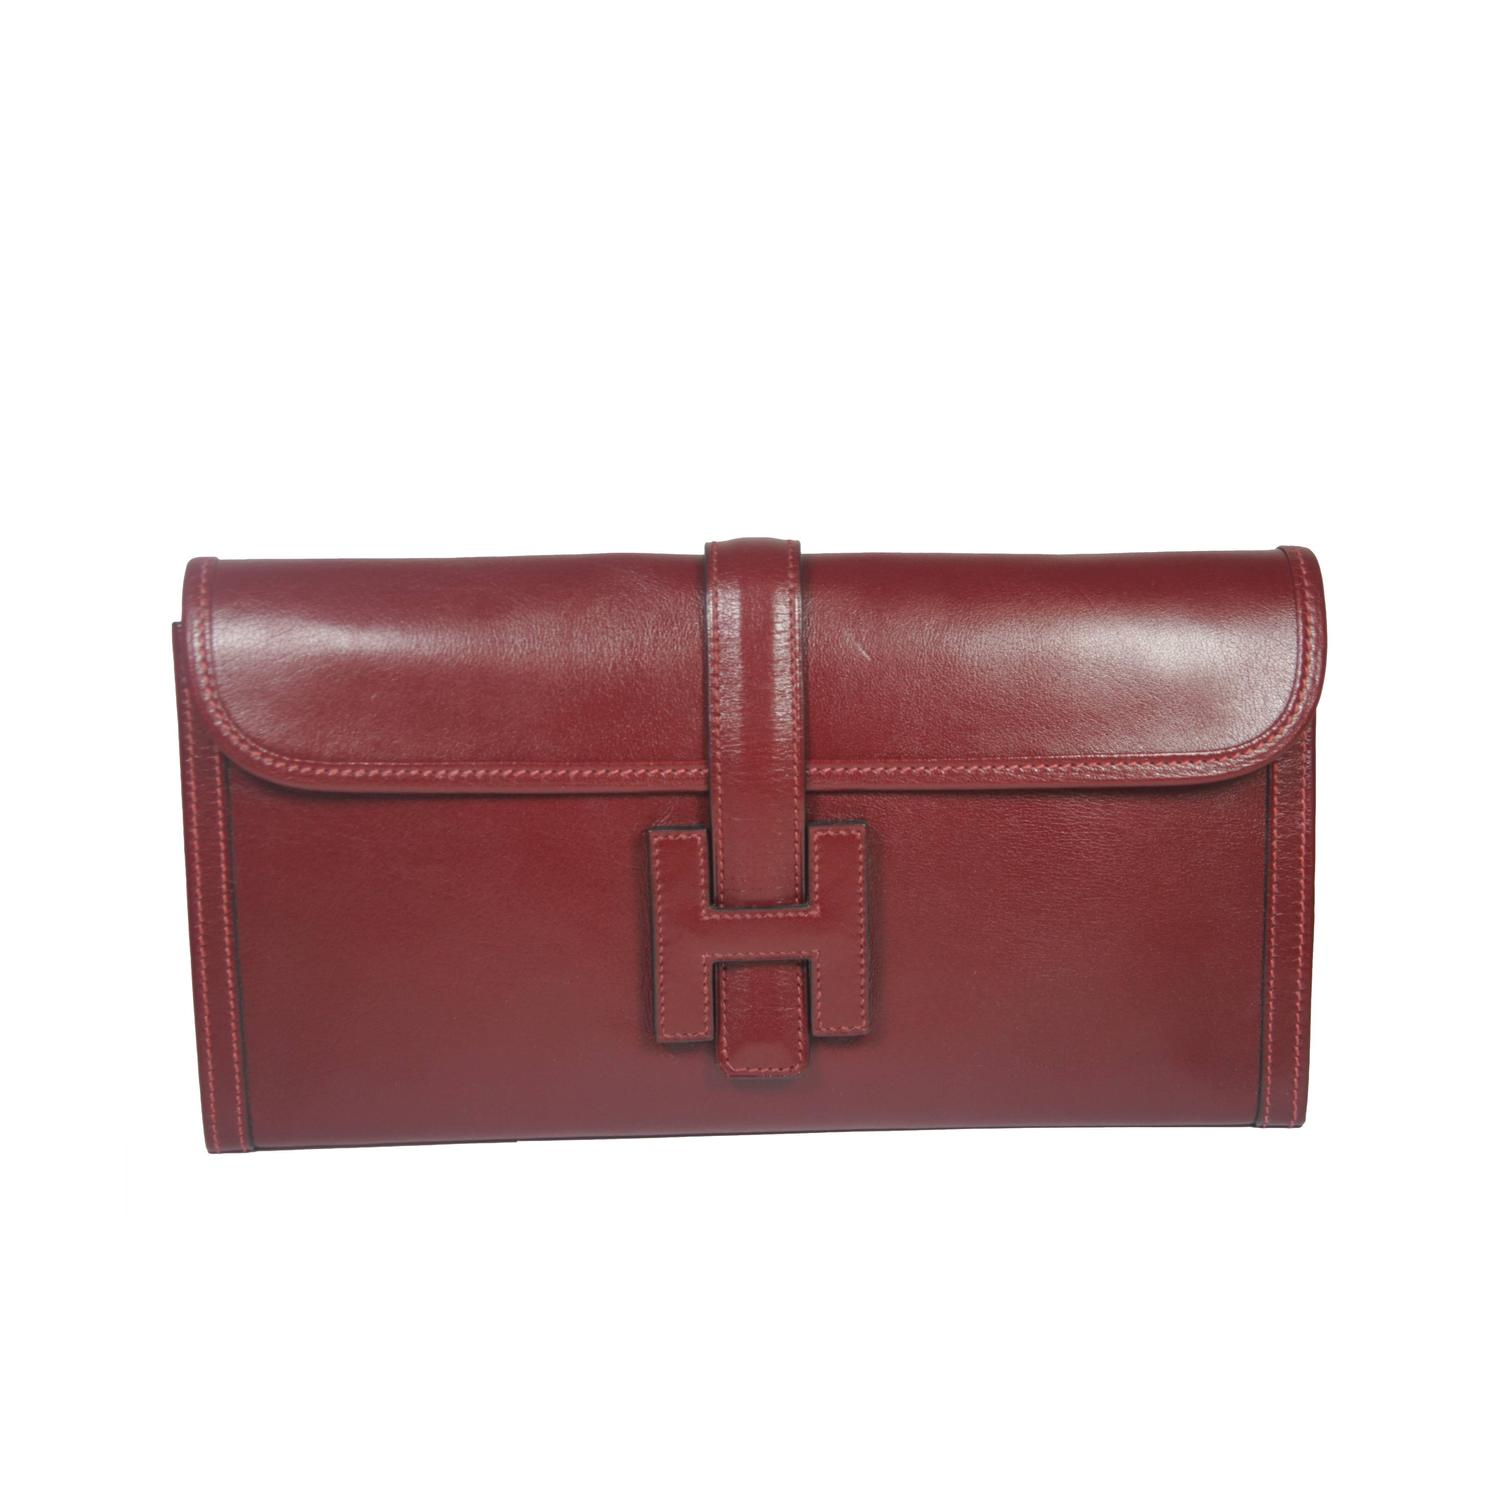 most reliable exceptional range of styles discount collection HERMES Jige